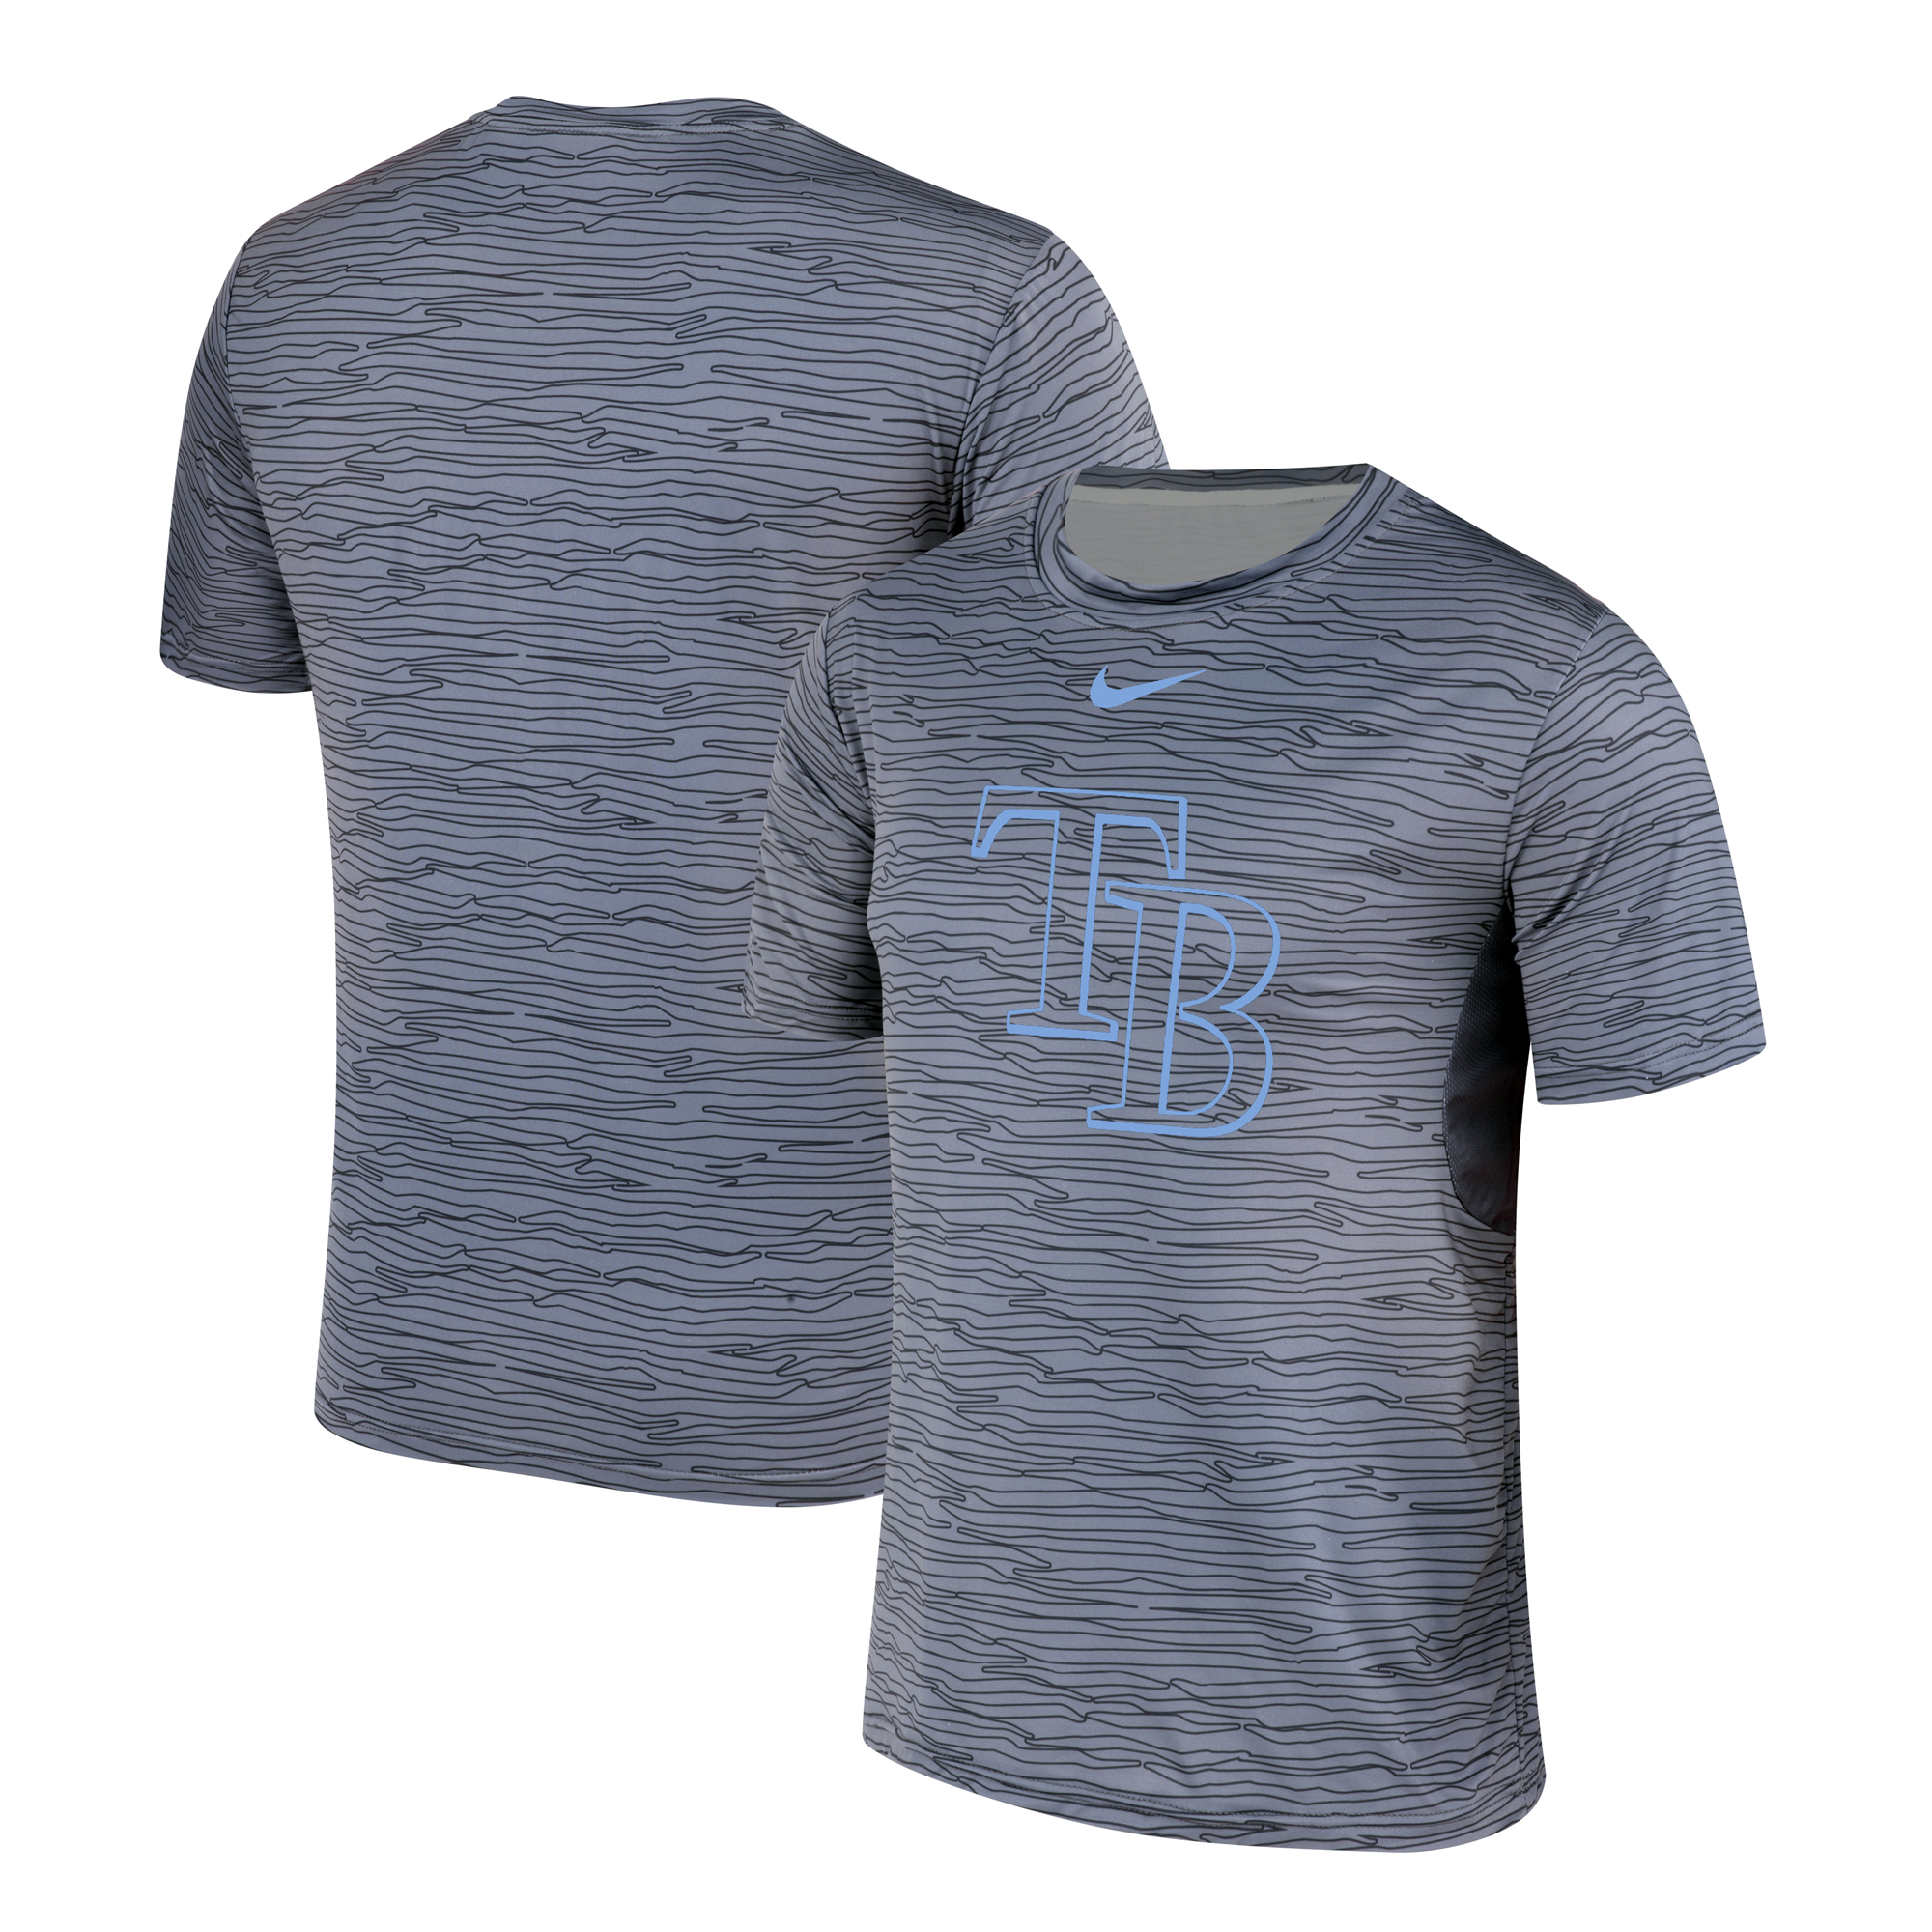 Nike Tampa Bay Rays Gray Black Striped Logo Performance T-Shirt